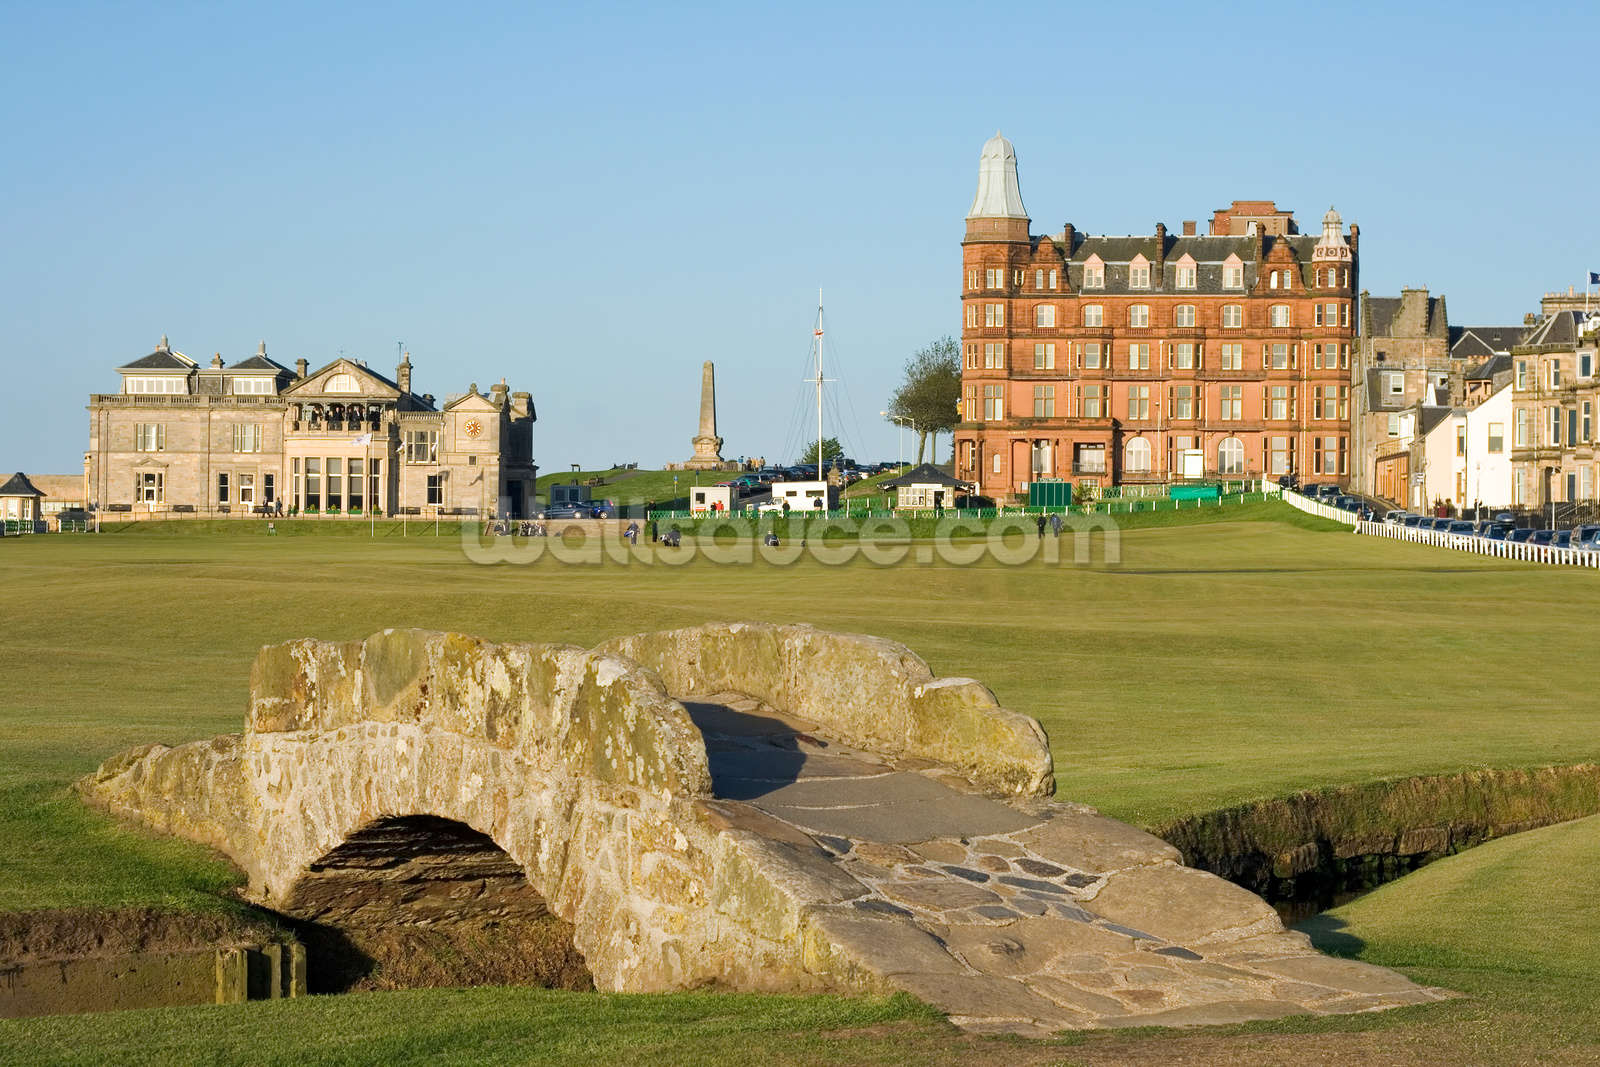 free online personals in saint andrews Home features dating in the bubble illustration: rosie catcheside  it could be that the small size of st andrews makes using dating apps somewhat obsolete,.